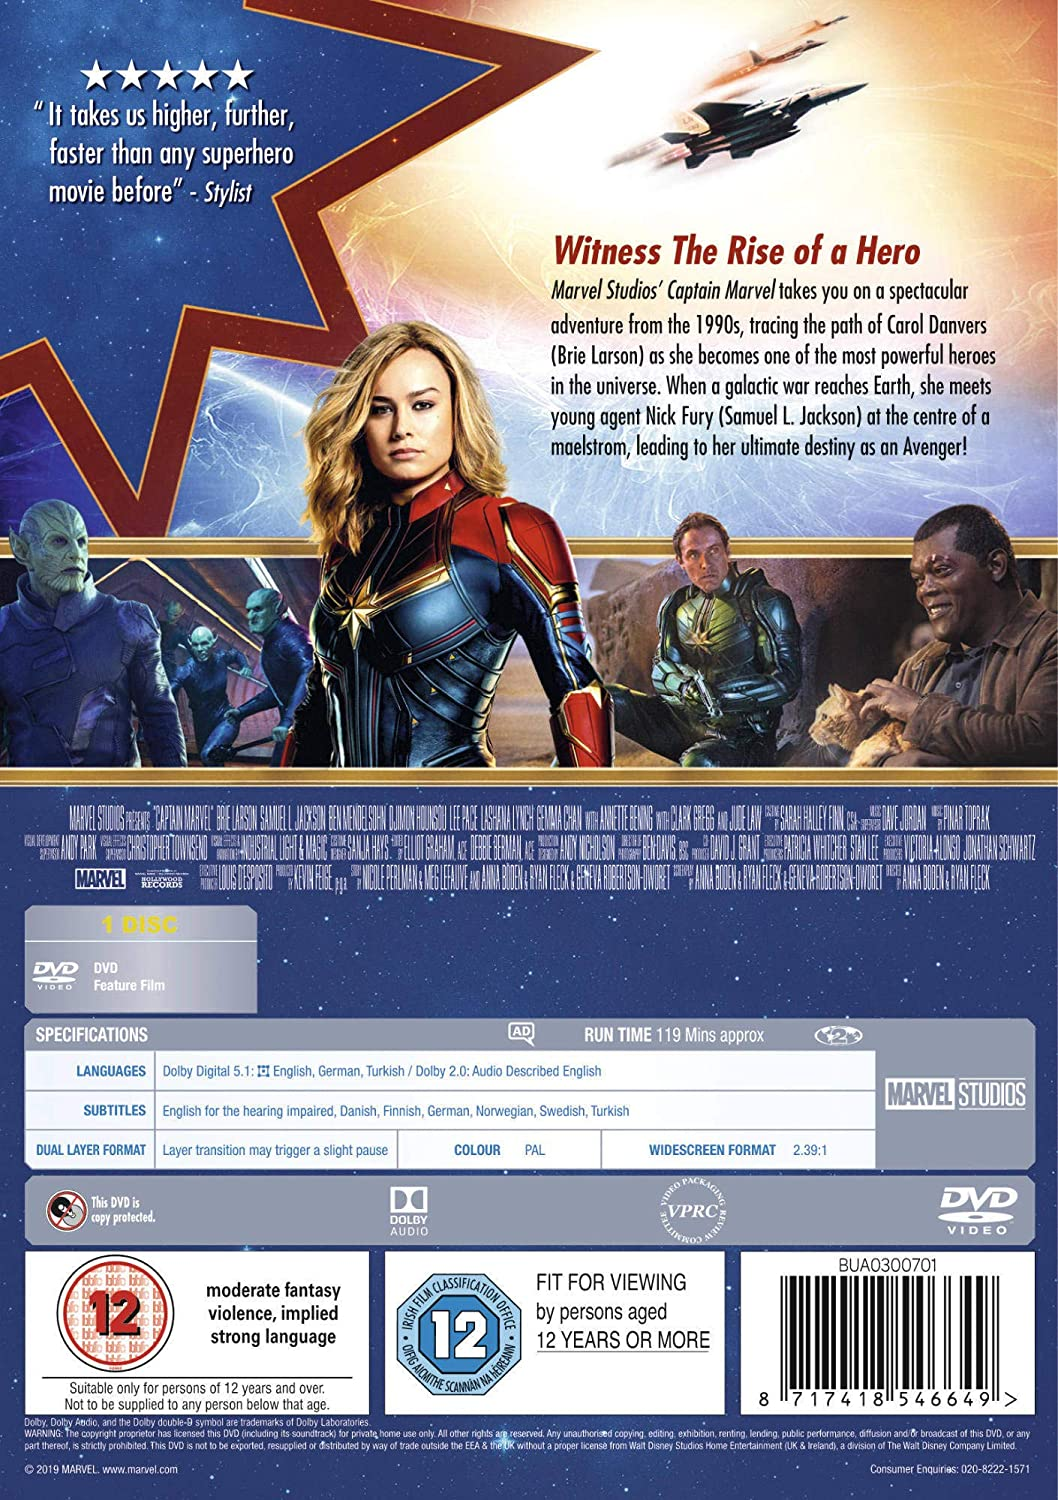 Captain Marvel [DVD] [2019]: Amazon co uk: DVD & Blu-ray